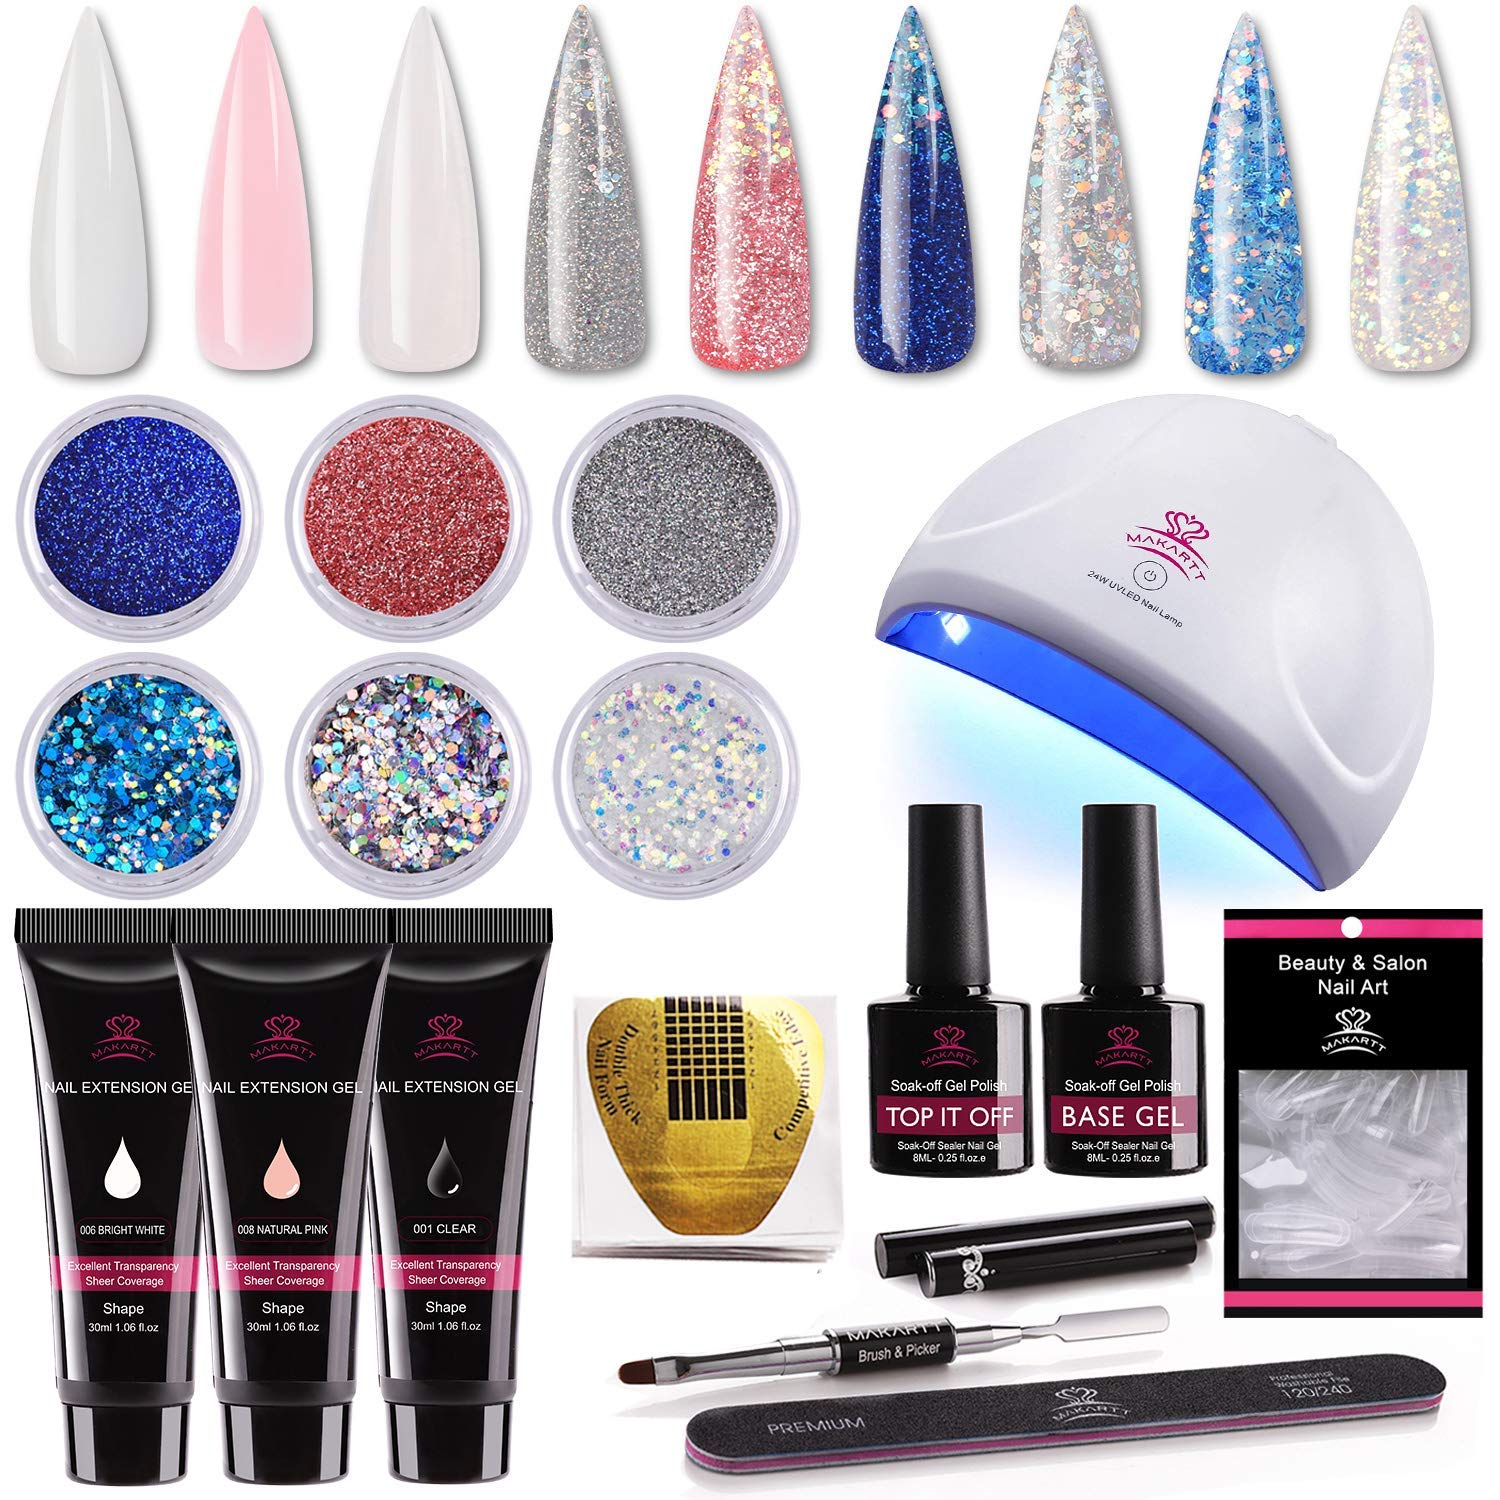 Makartt Nail Extension Gel Kit 30ml, Gel Builder Clear White Pink with 24W LED Nail Lamp and Glitter Powders Gorgeous French Manicure Kit P-09 : Beauty